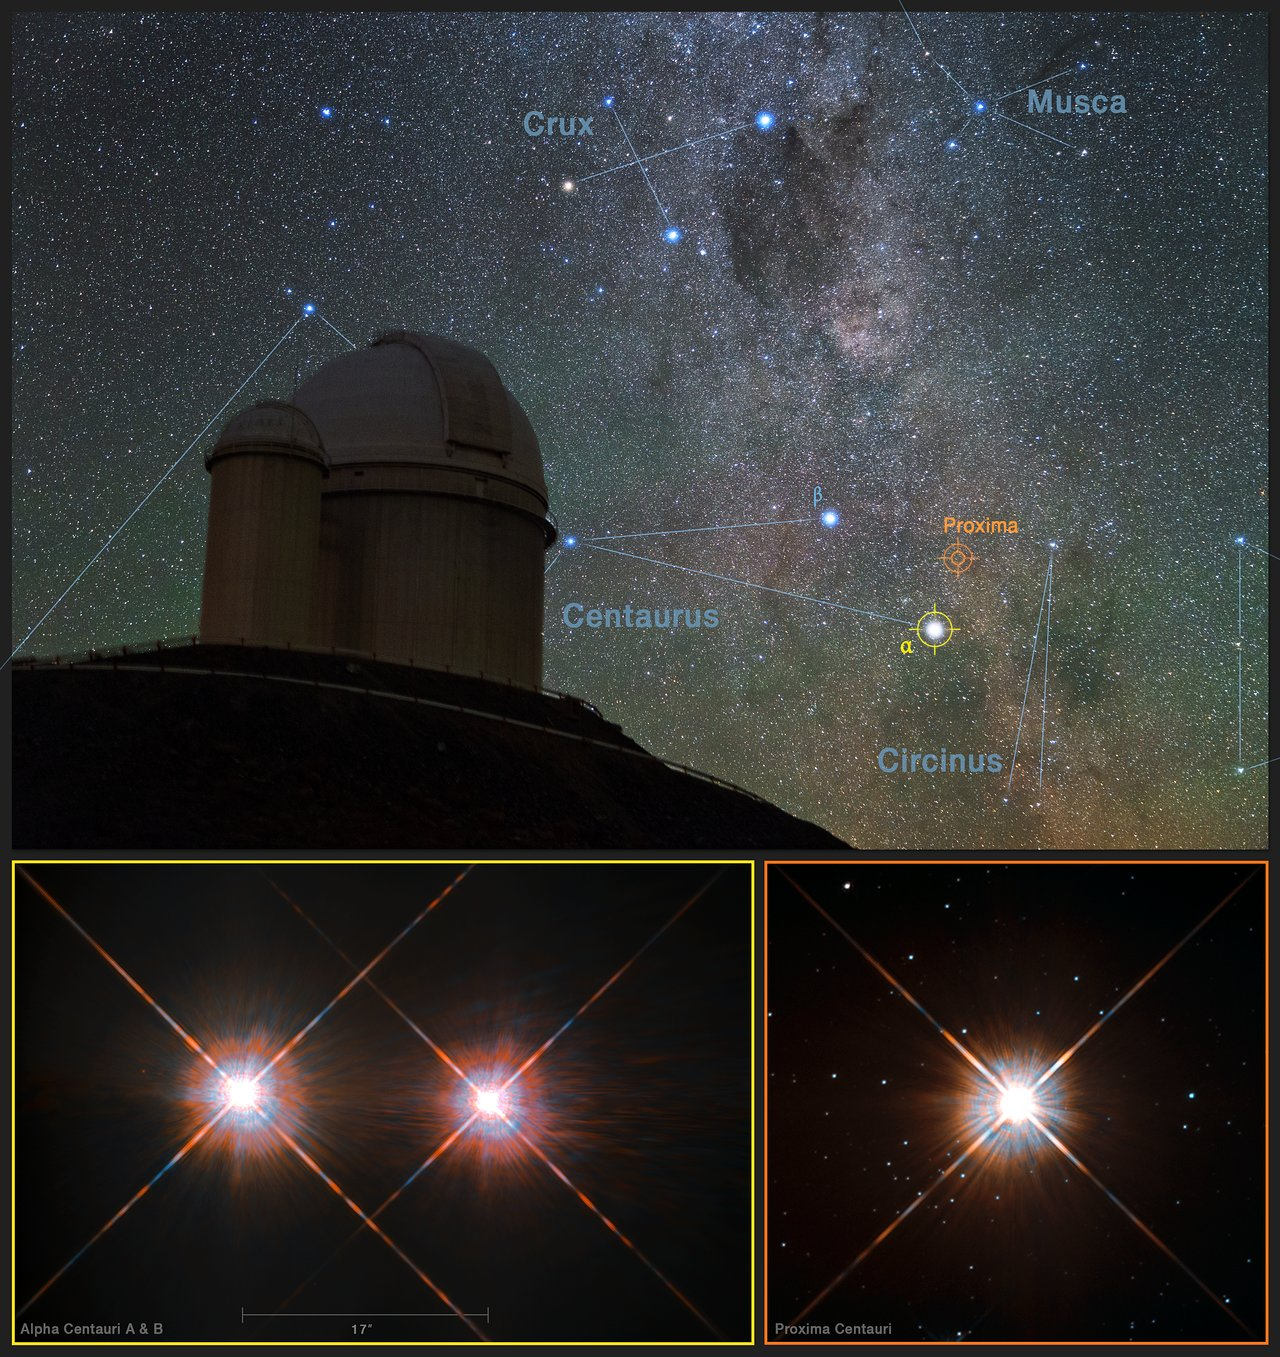 This picture combines a view of the southern skies over the ESO 3.6-metre telescope at the La Silla Observatory in Chile with images of the stars Proxima Centauri (lower-right) and the double star Alpha Centauri AB (lower-left) from the NASA/ESA Hubble Space Telescope. Proxima Centauri is the closest star to the Solar System and is orbited by the planet Proxima b, which was discovered using the HARPS instrument on the ESO 3.6-metre telescope. - Image Credit: Y. Beletsky (LCO)/ESO/ESA/NASA/M. Zamani